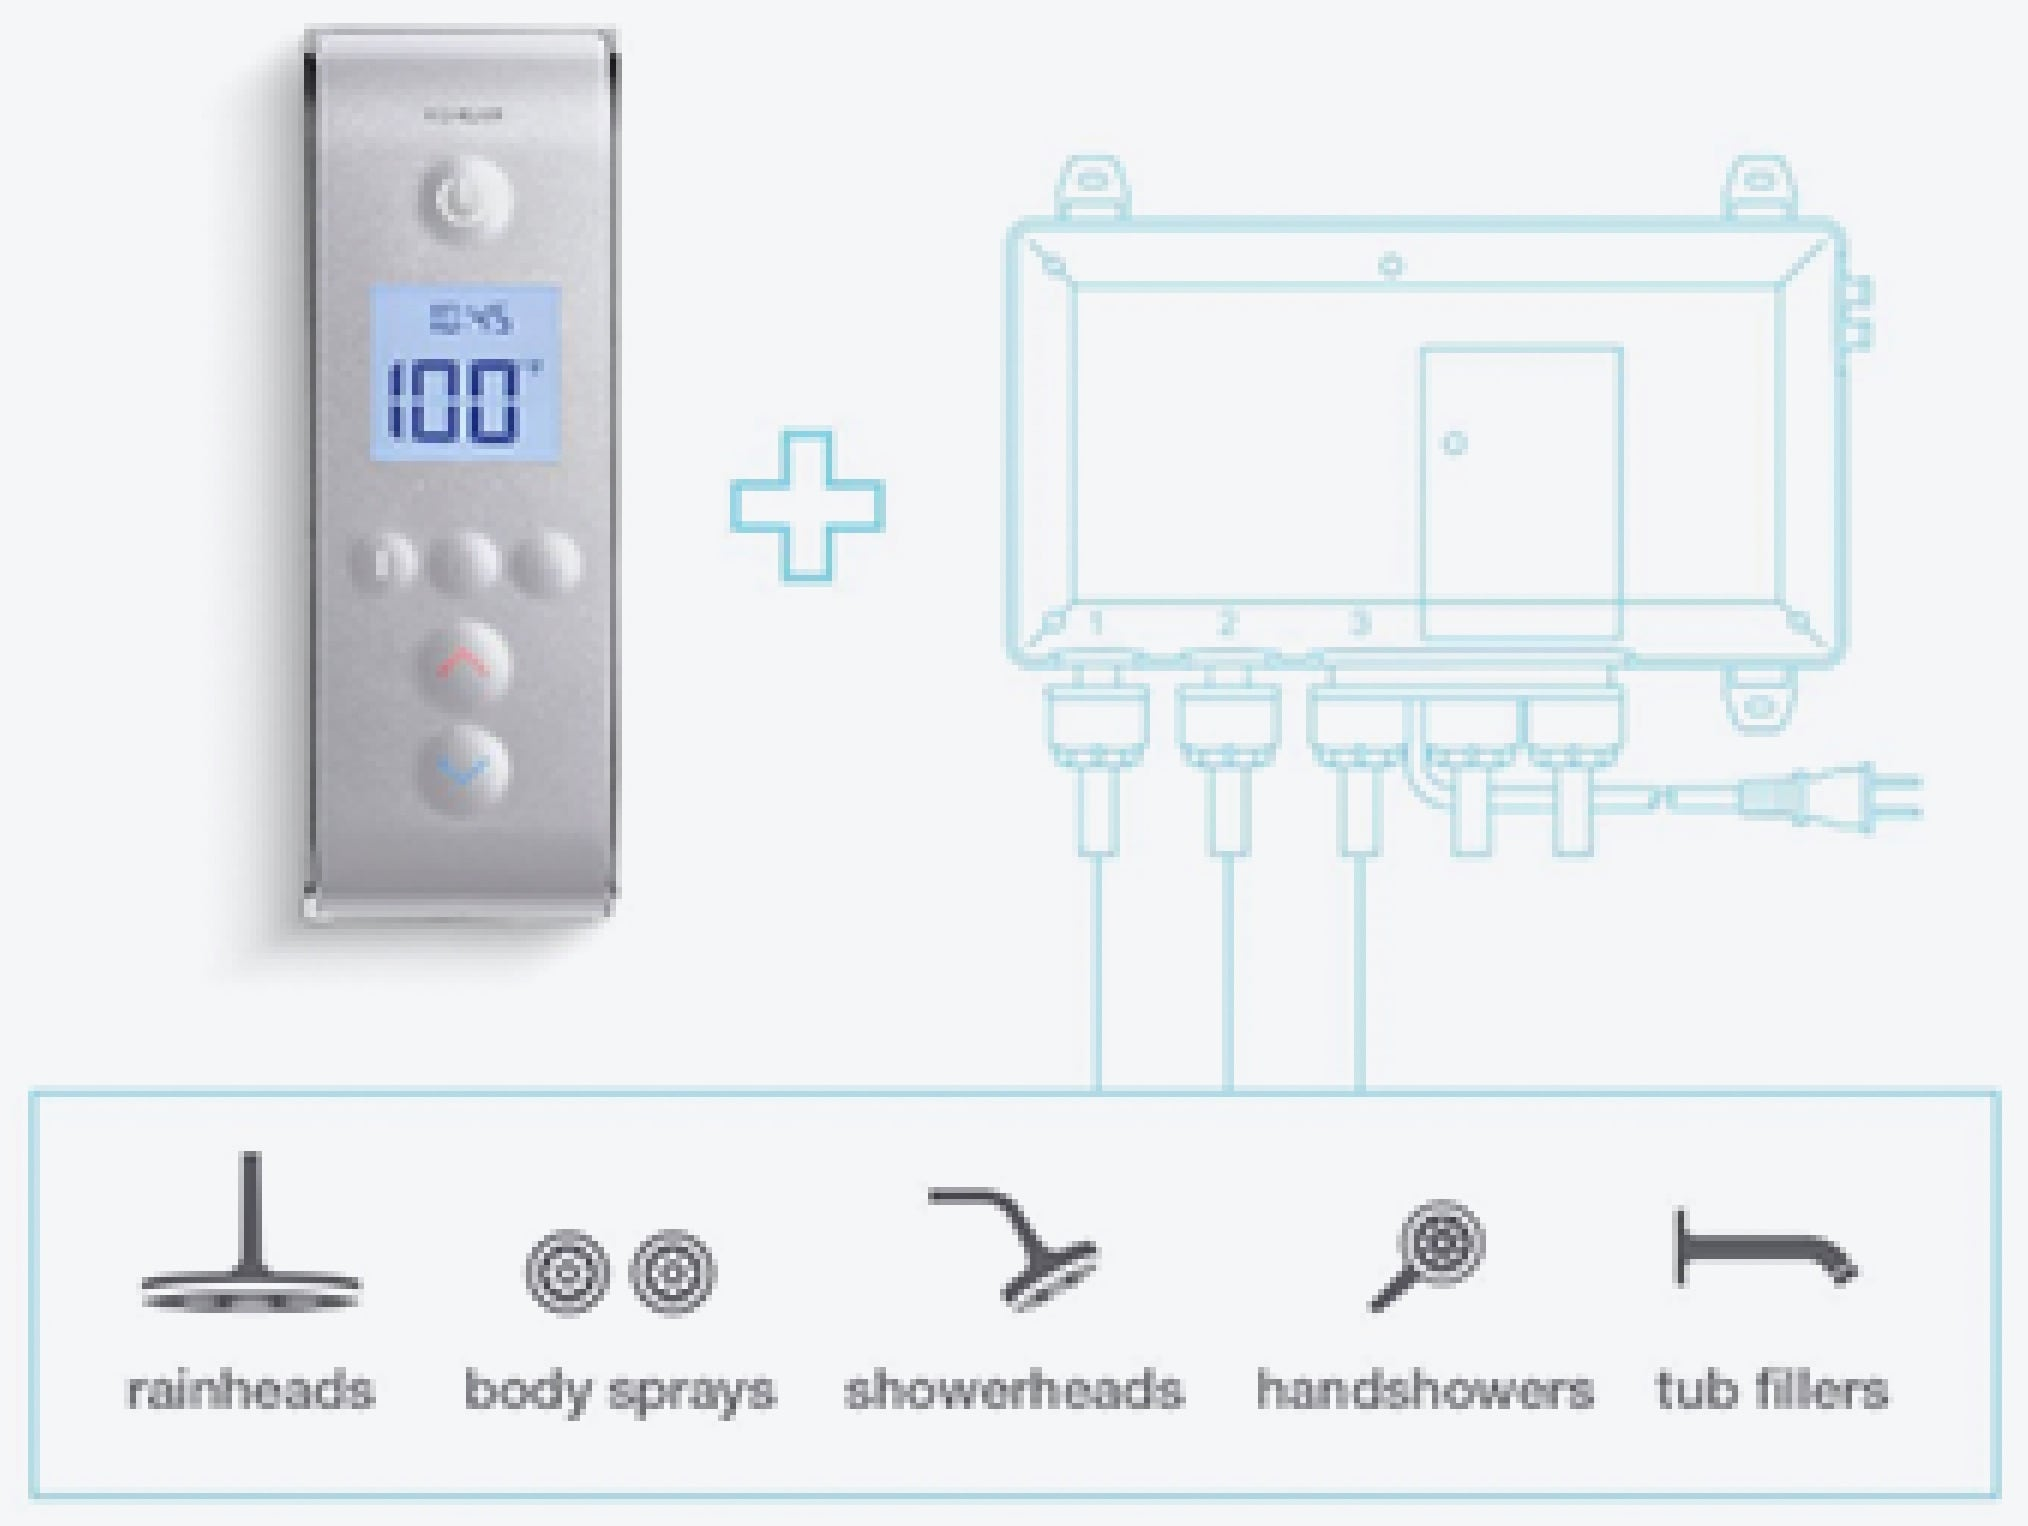 Detailed image of the DTV Prompt® Digital Shower System from Kohler